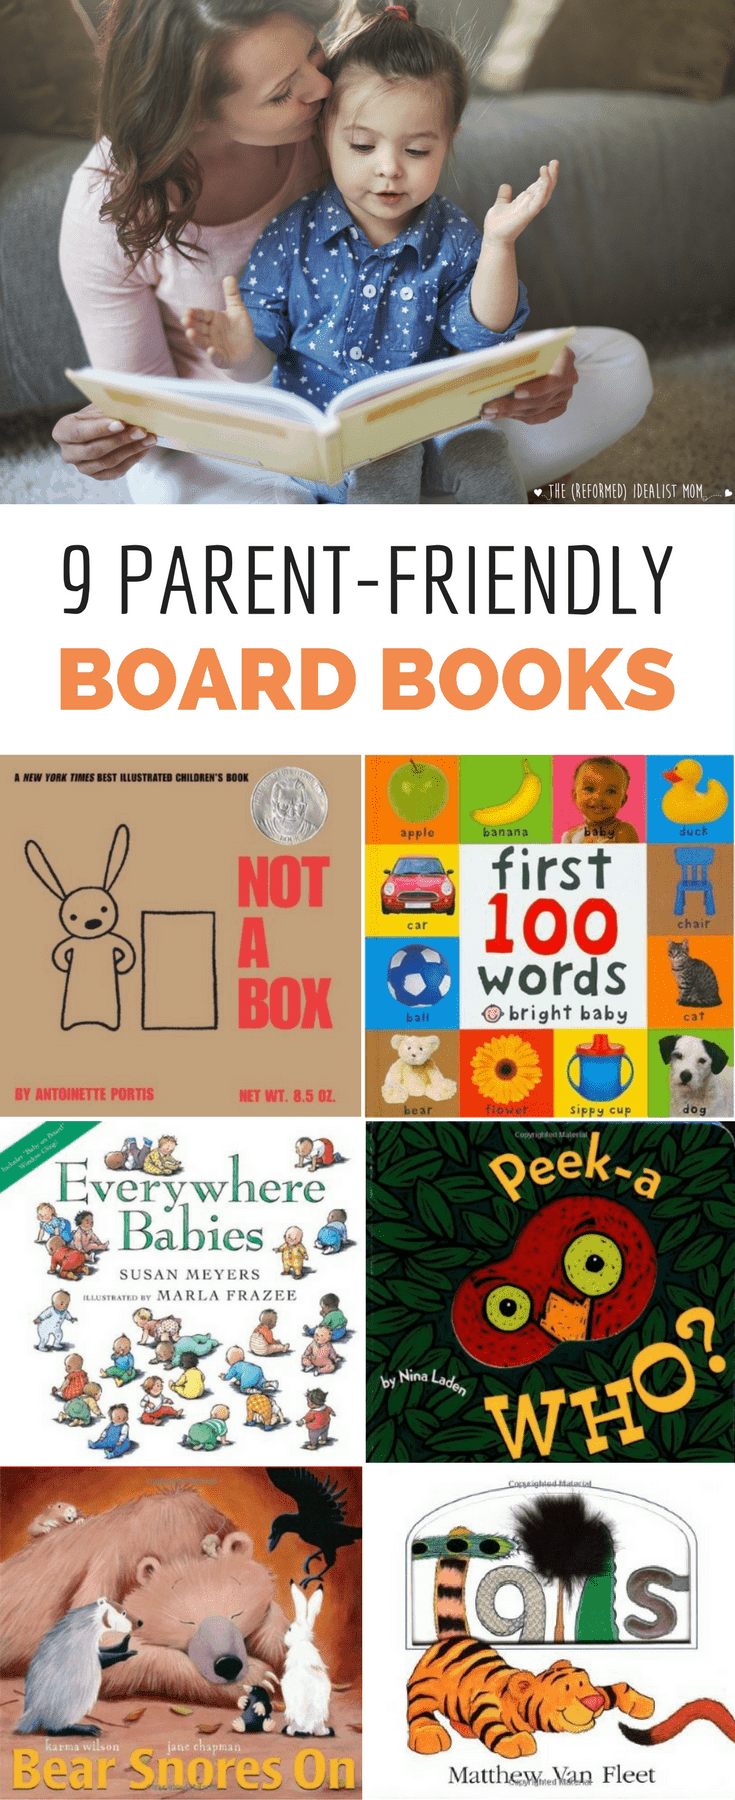 9 Baby Books That Won't Make You Gouge Out Your Eyes